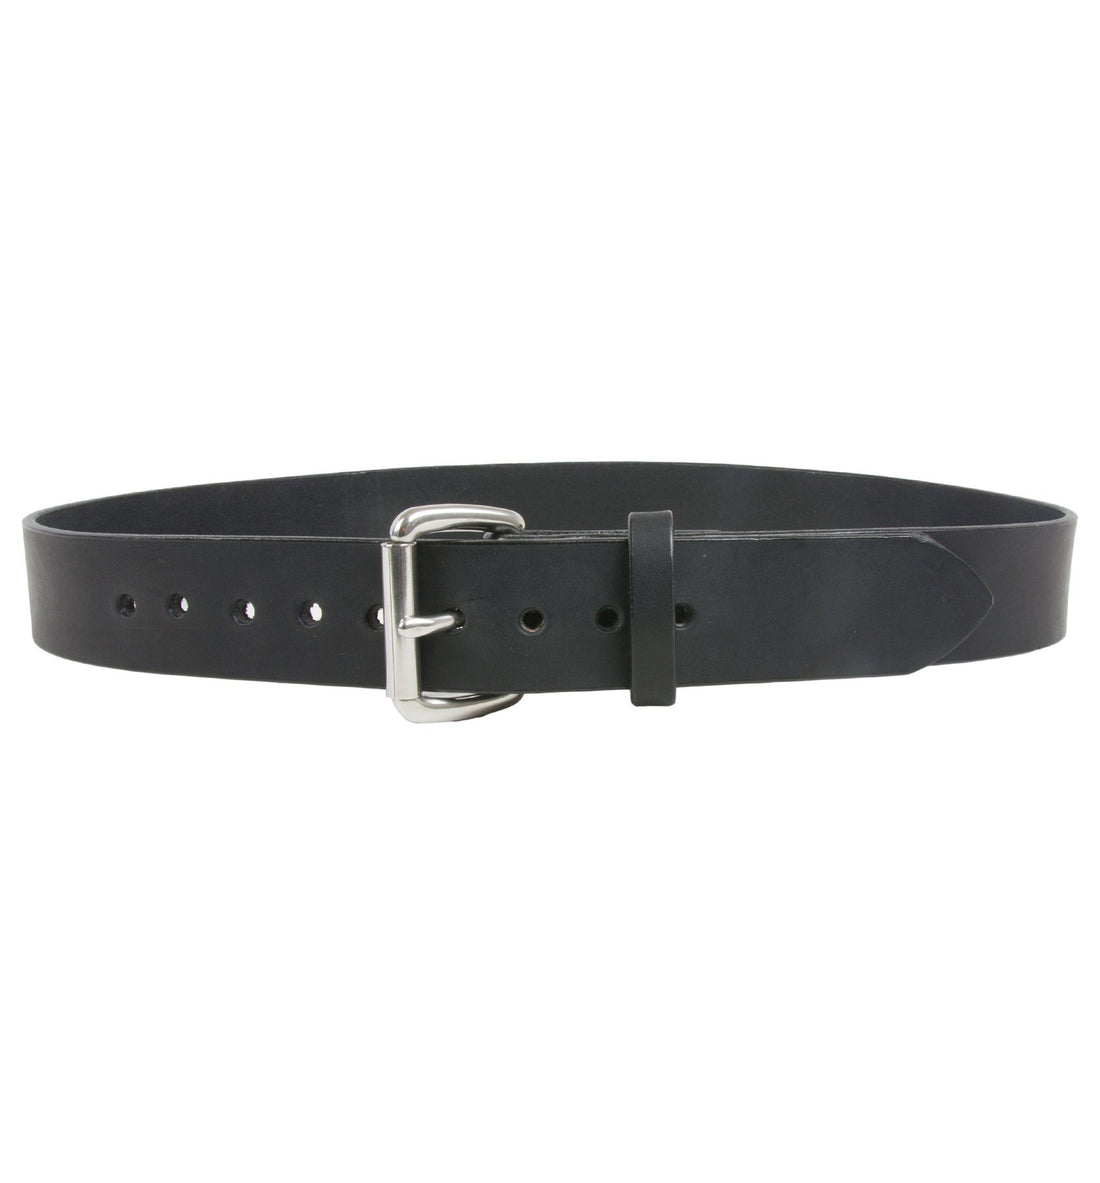 InR x Farrow Co. JB Standard Belt - Belts - Iron and Resin